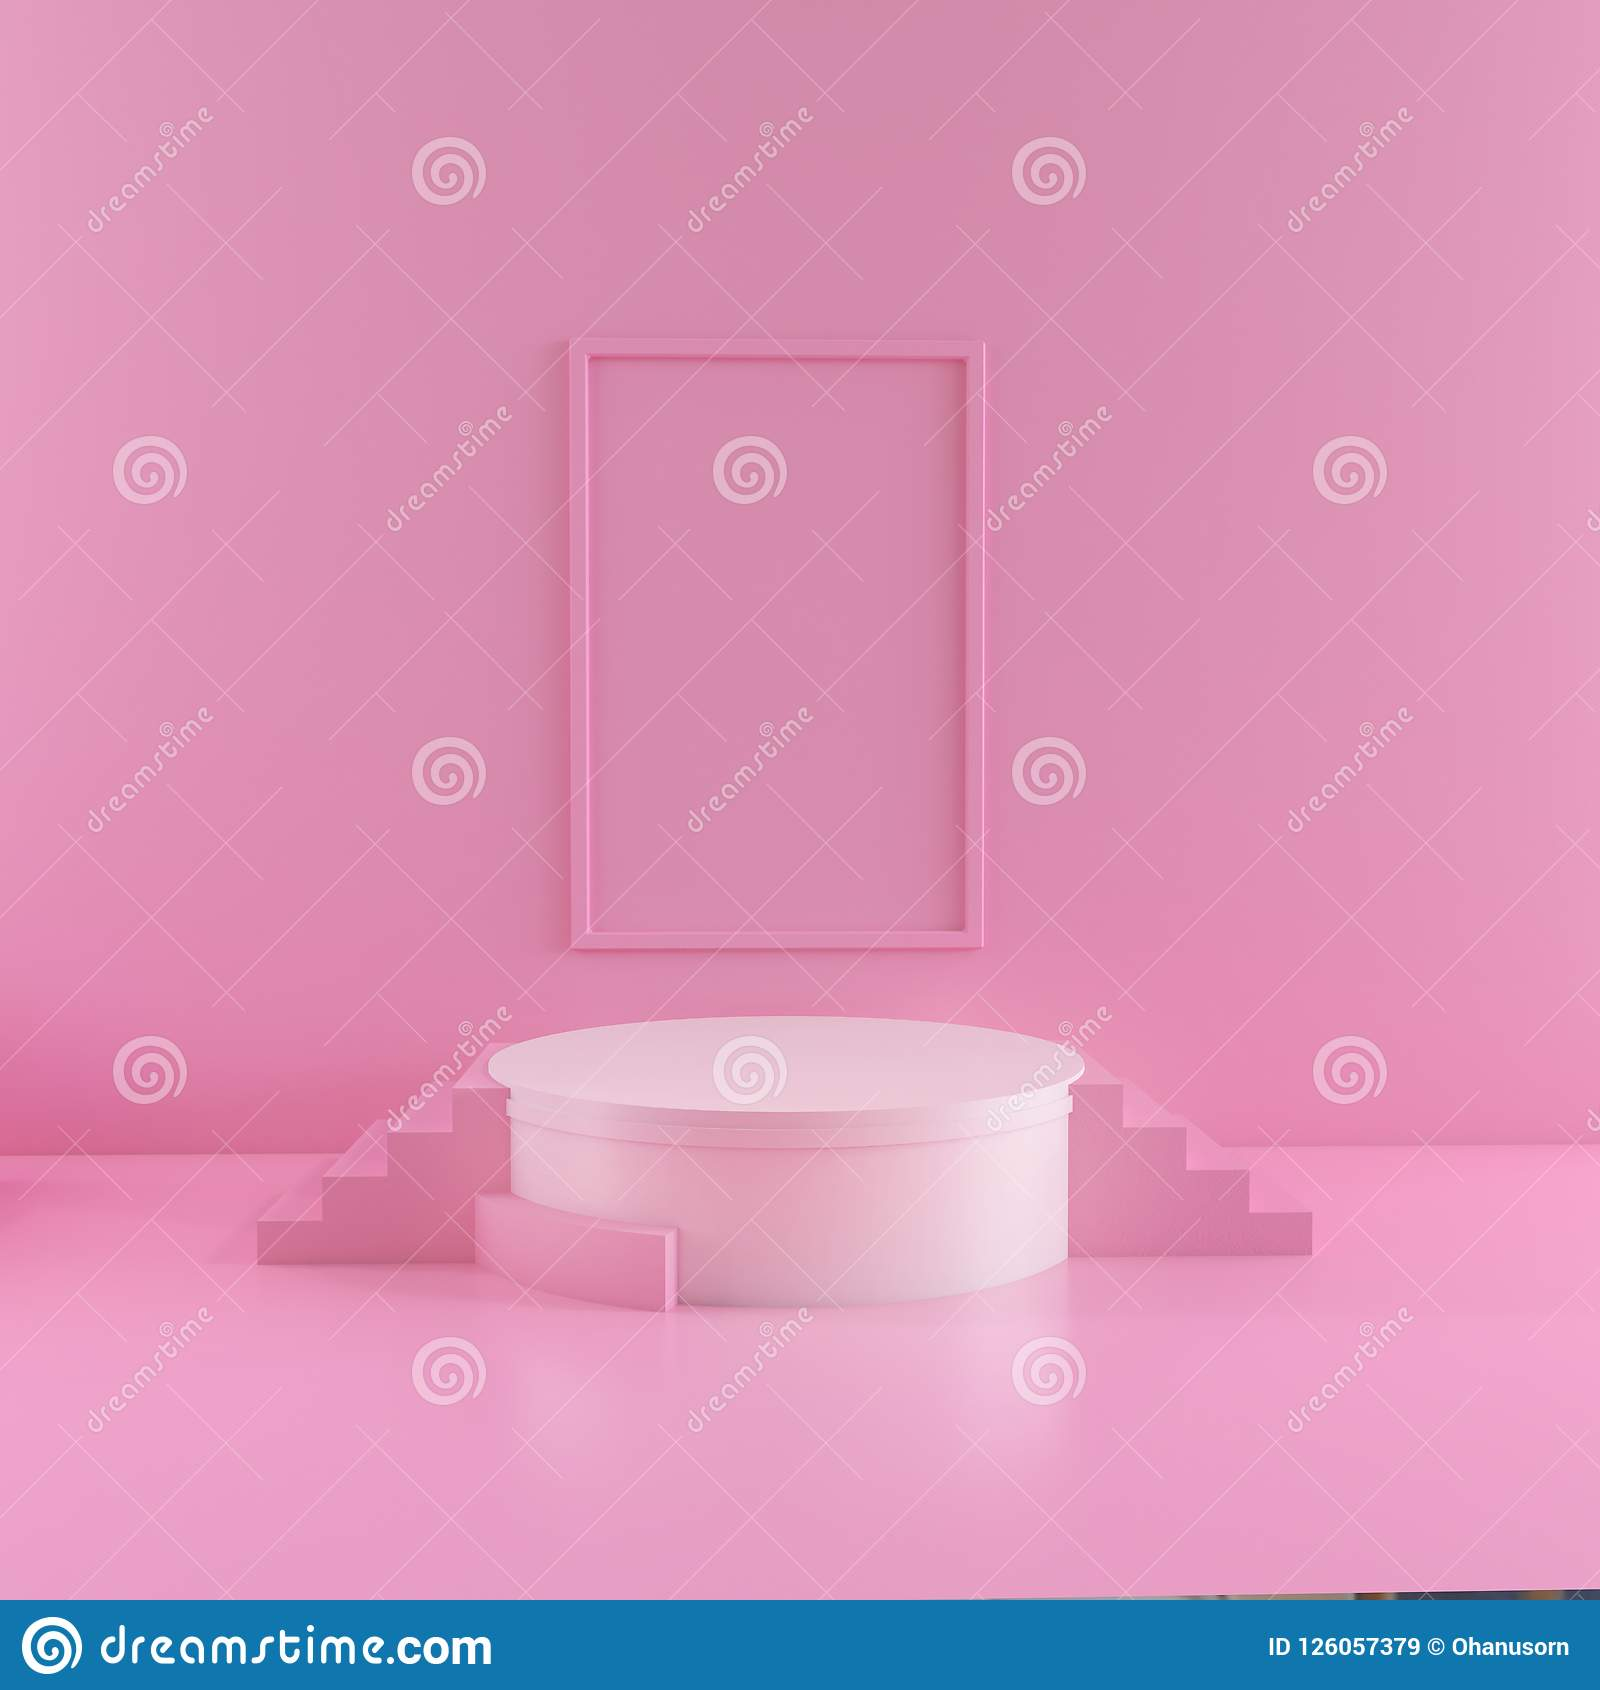 Abstract pink color geometric shape background, modern minimalist mockup for podium display.